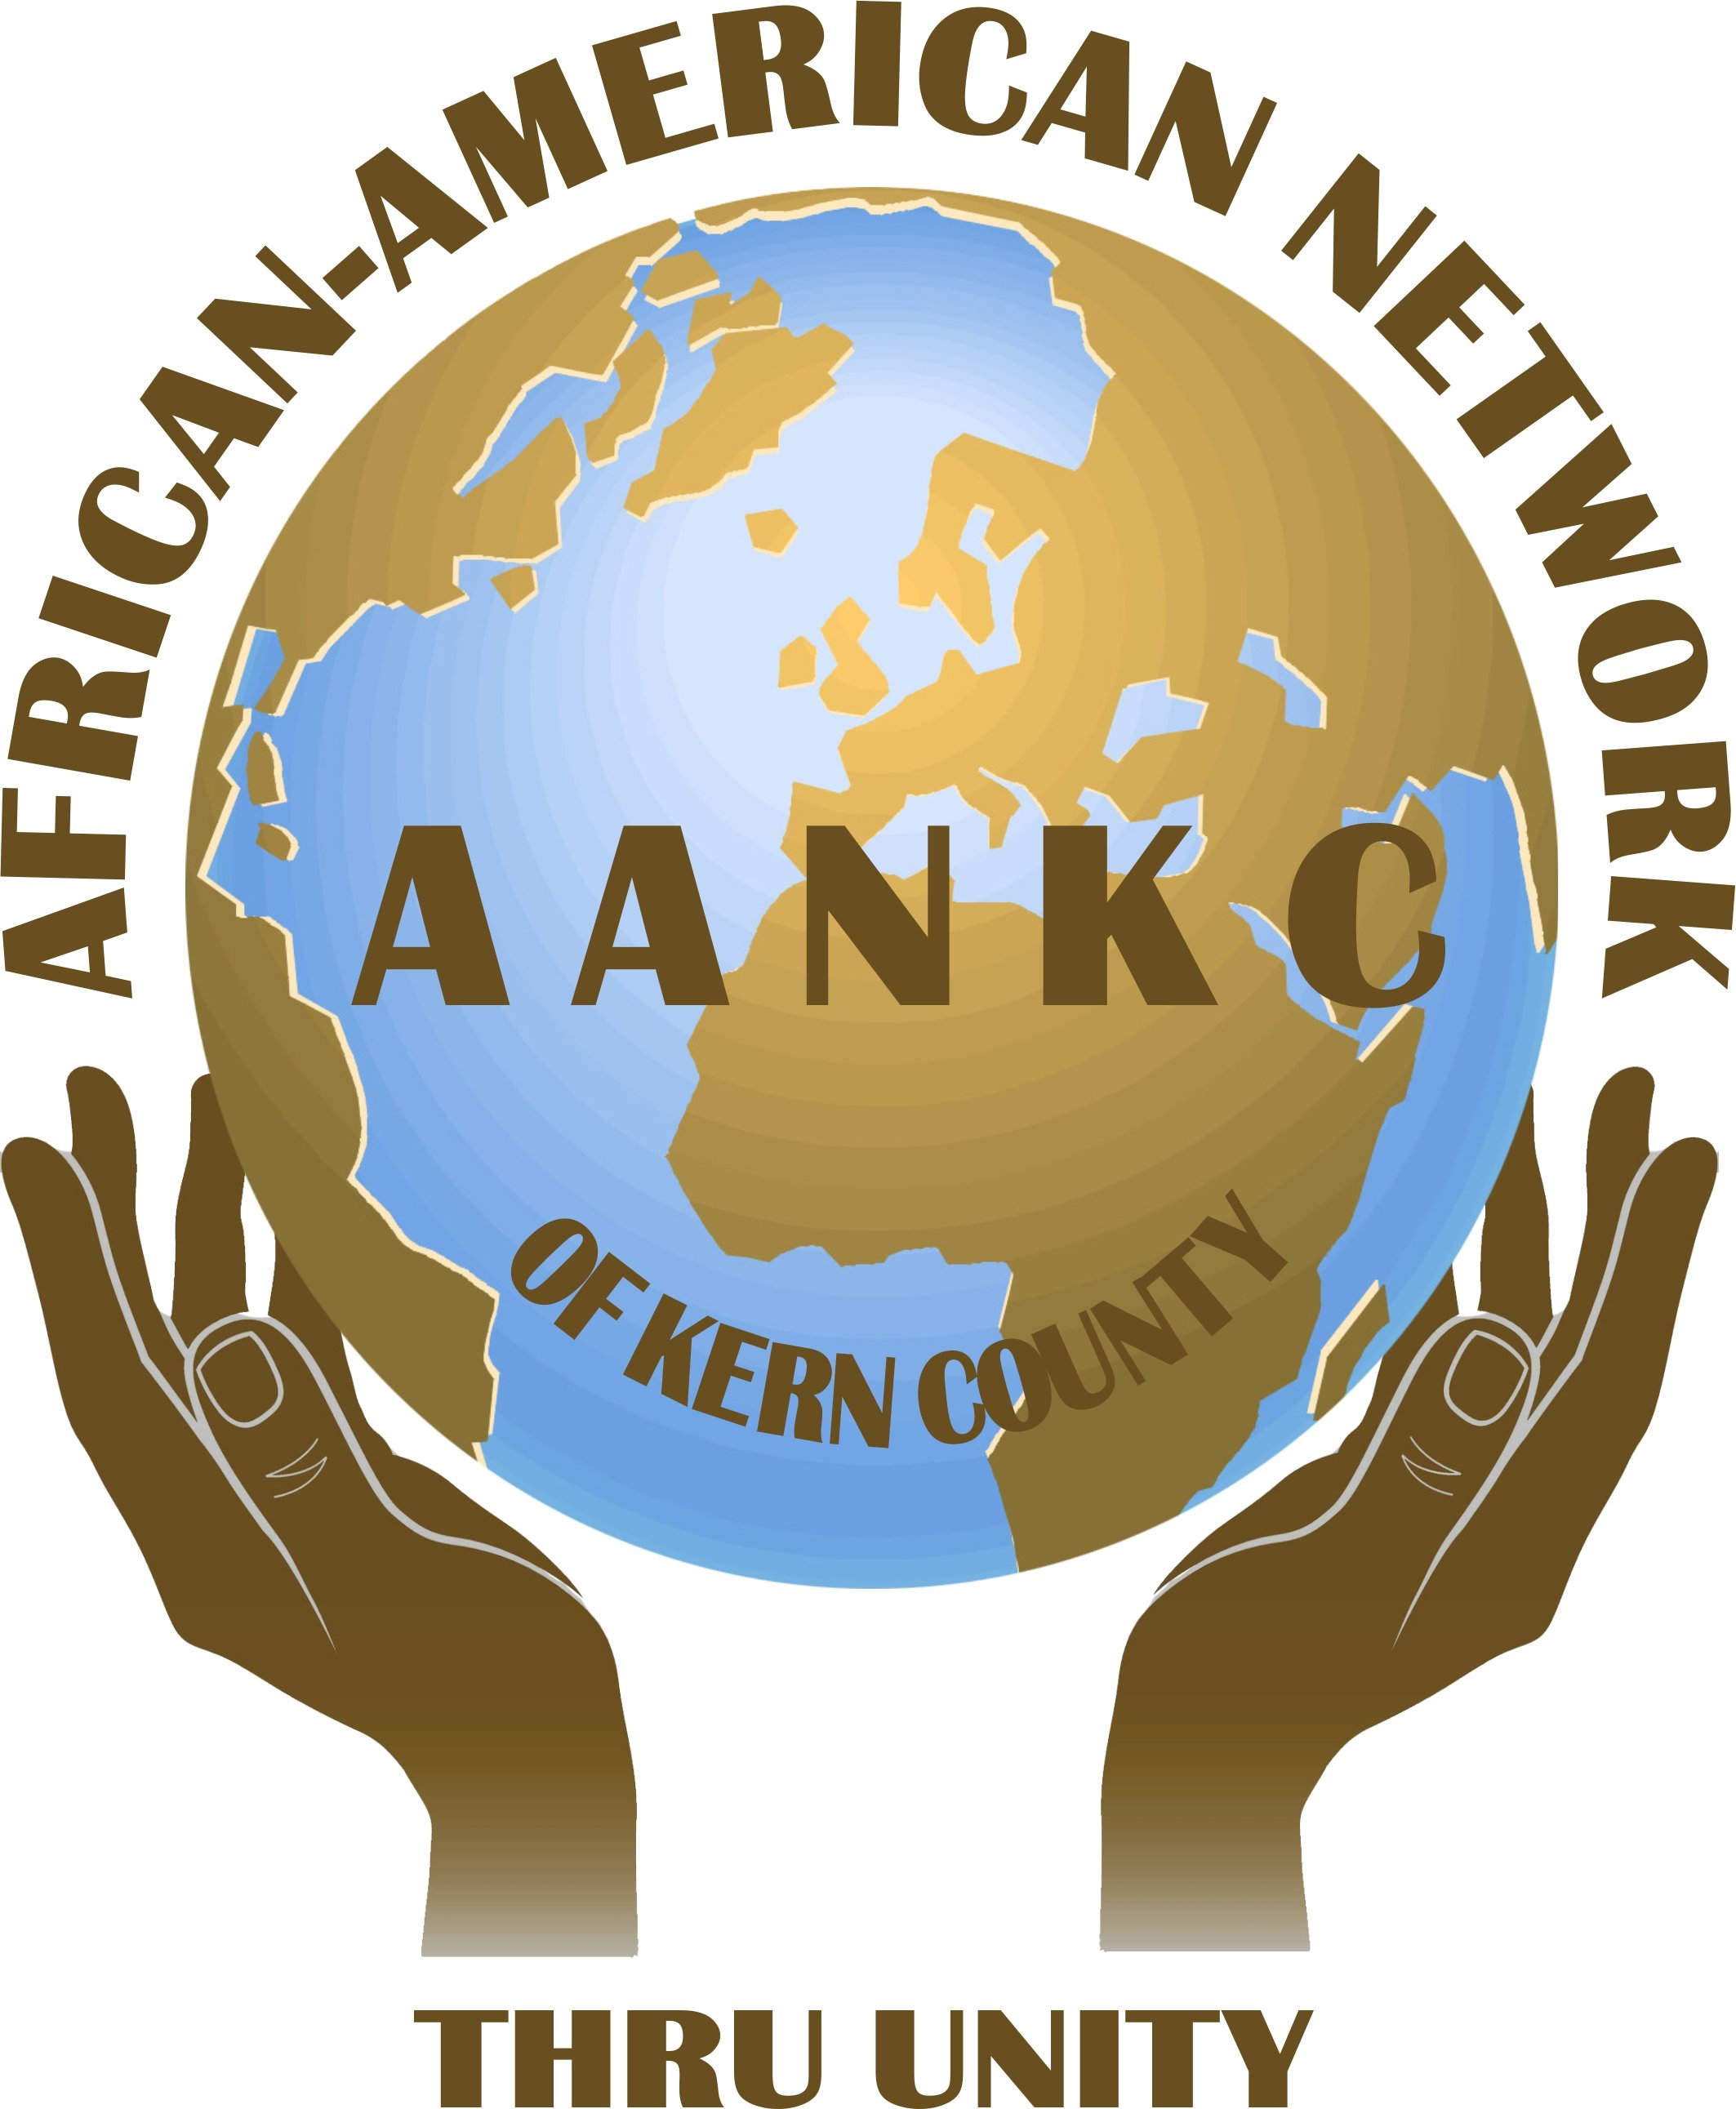 African American Network of Kern County